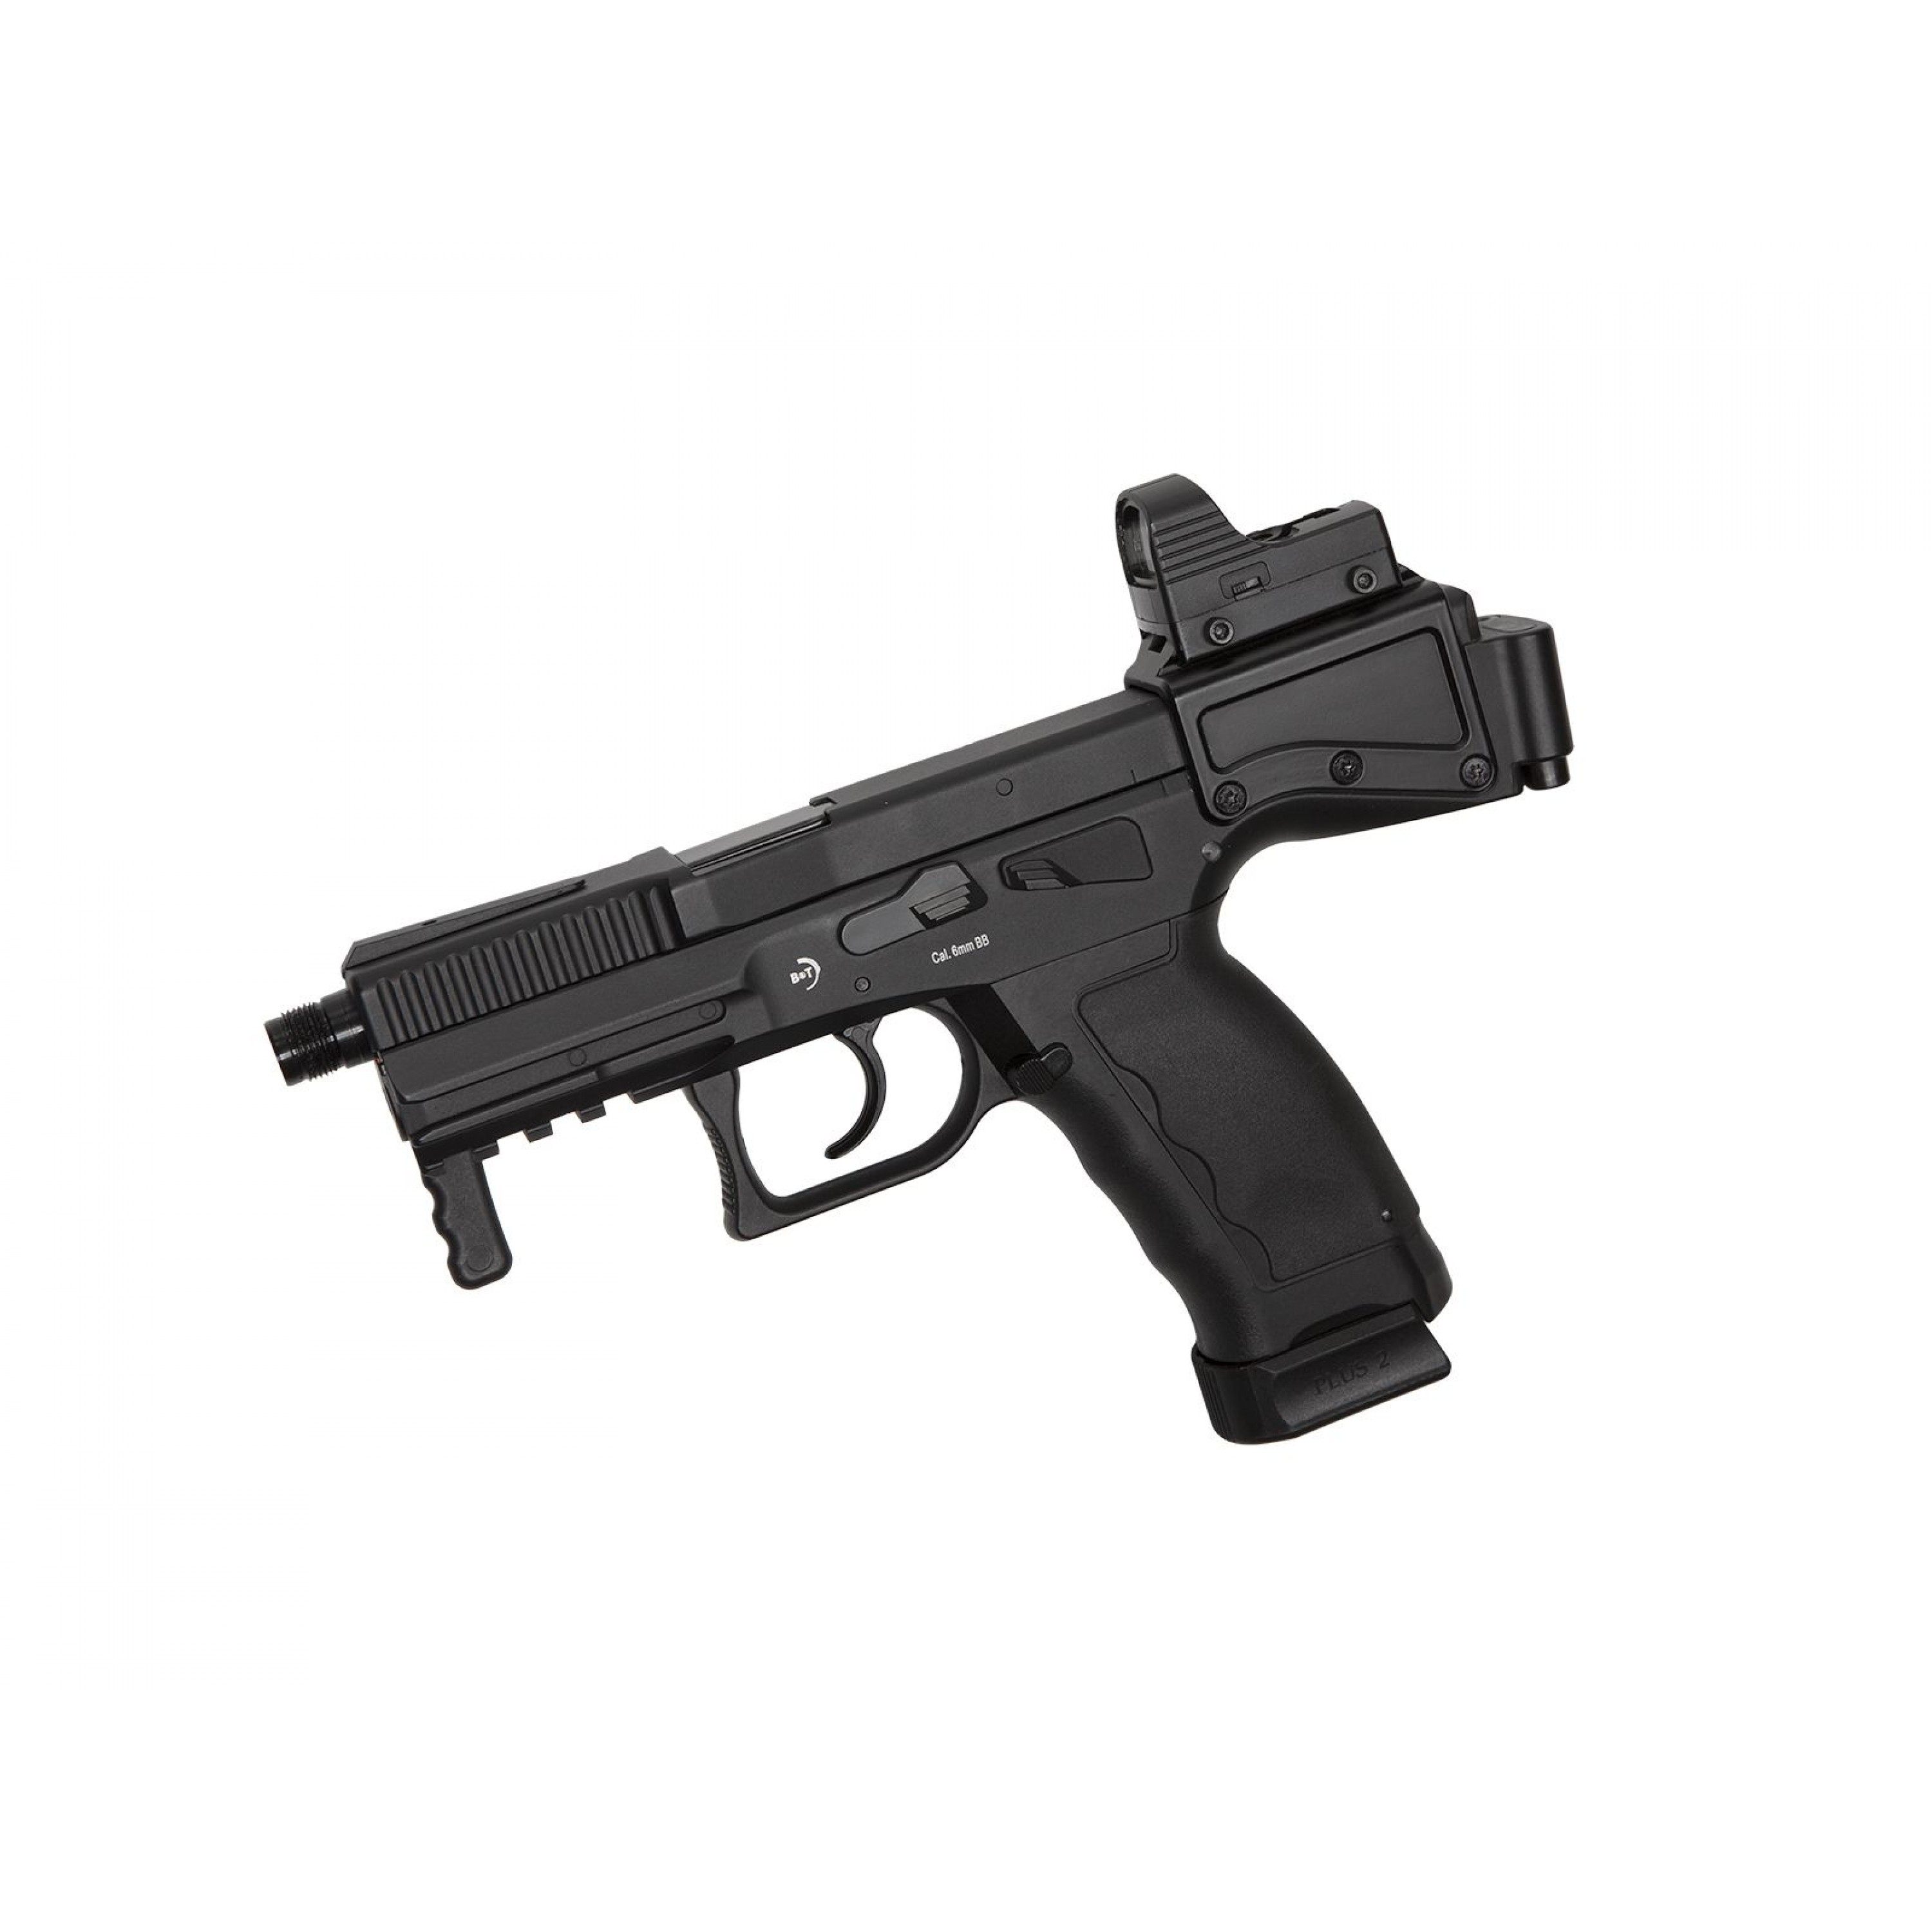 ASG B&T USW  (UNIVERSAL SERVICE WEAPON) A1 - Black